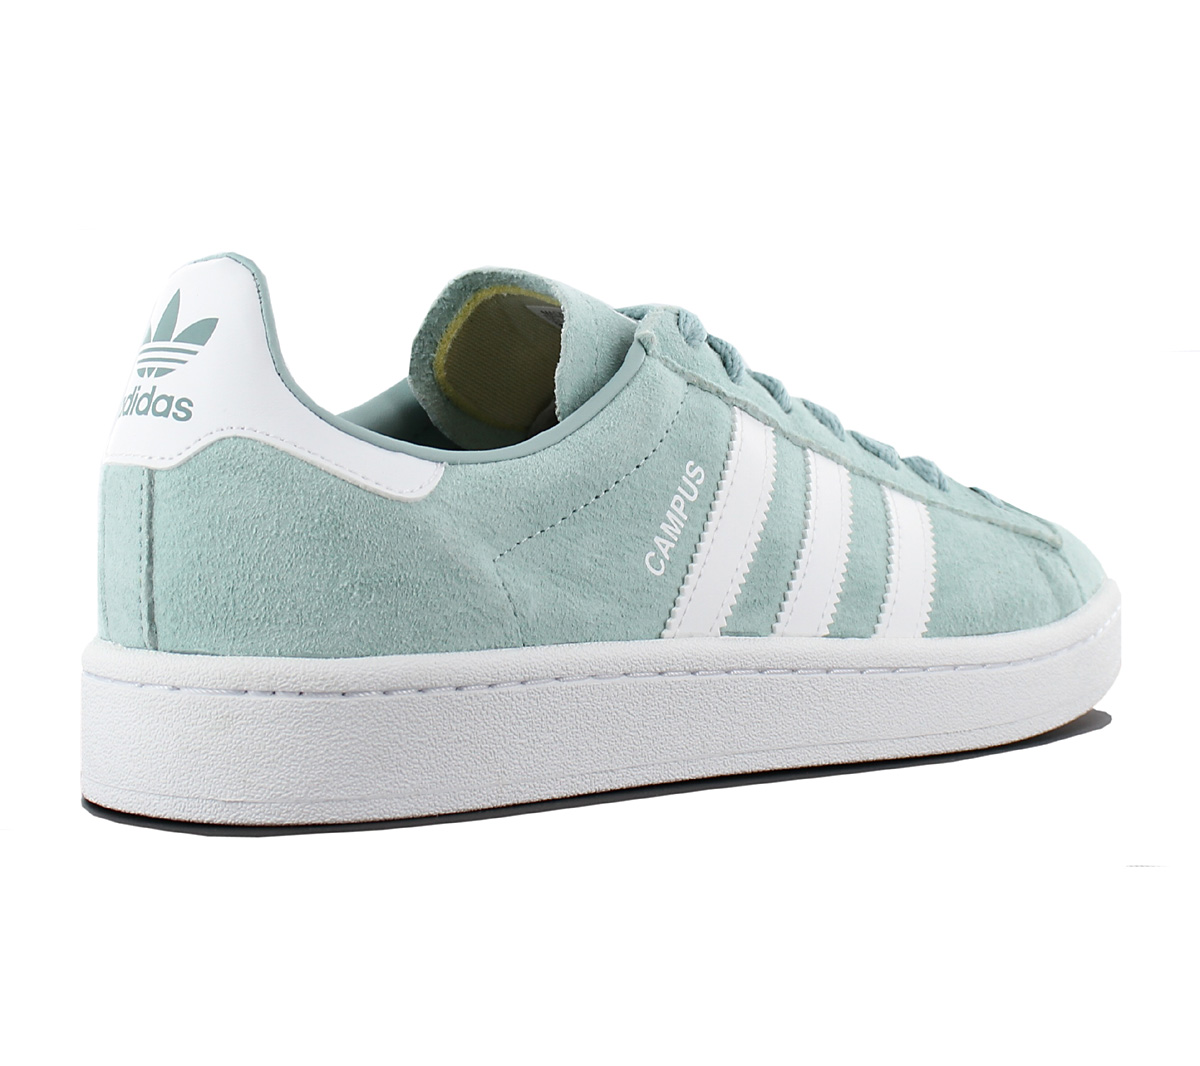 e18768caf82 NEW adidas Campus Leather BZ0082 Mens Shoes Trainers Sneakers SALE ...